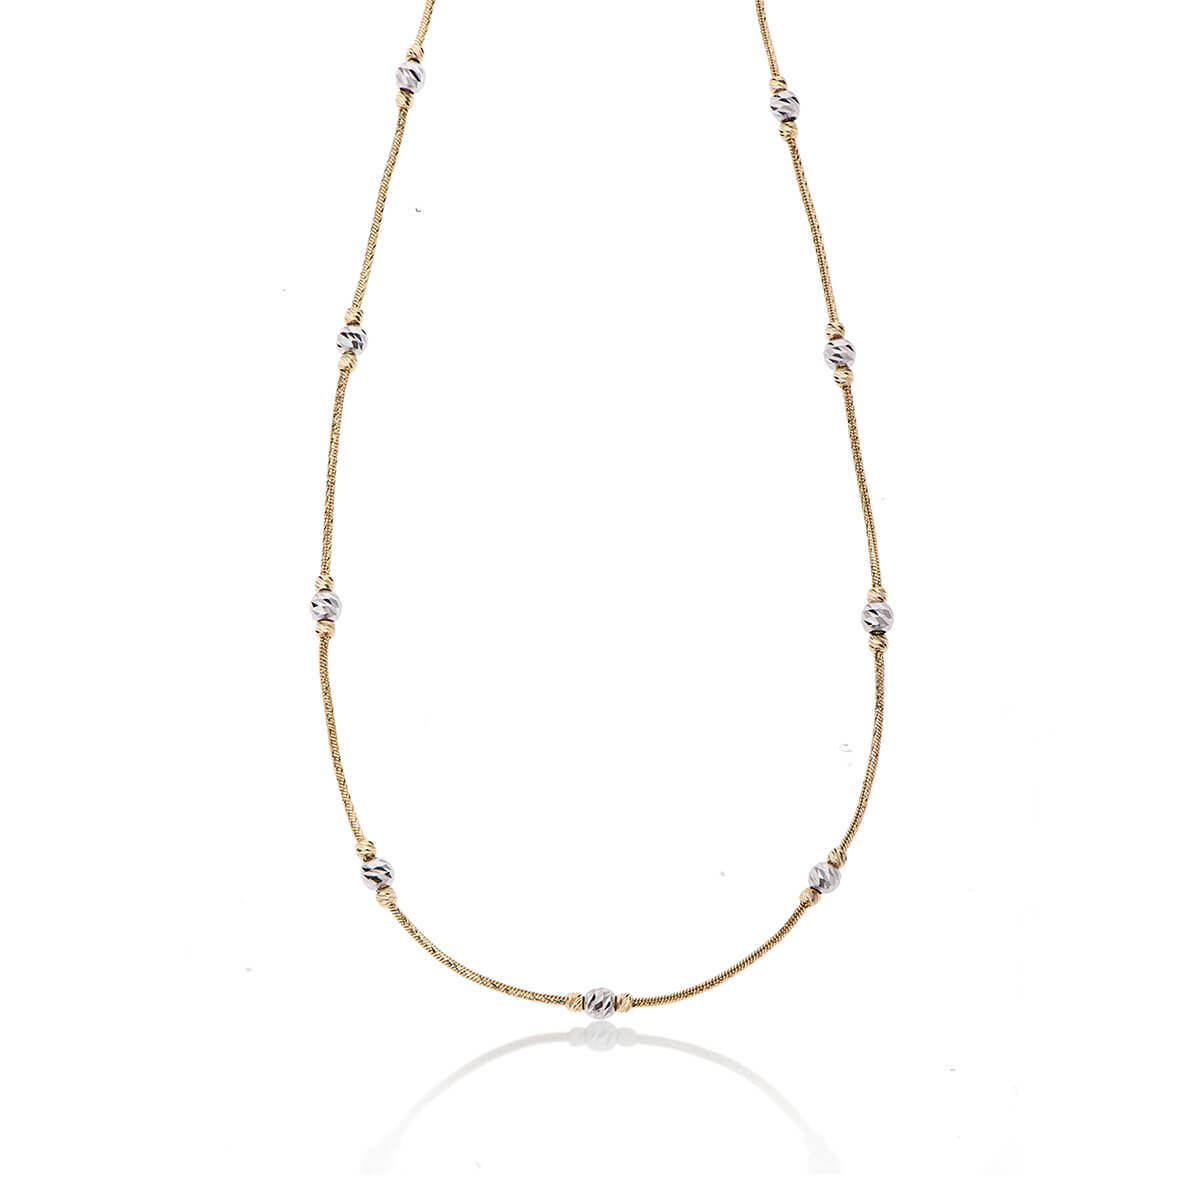 Necklace_C2328782-45